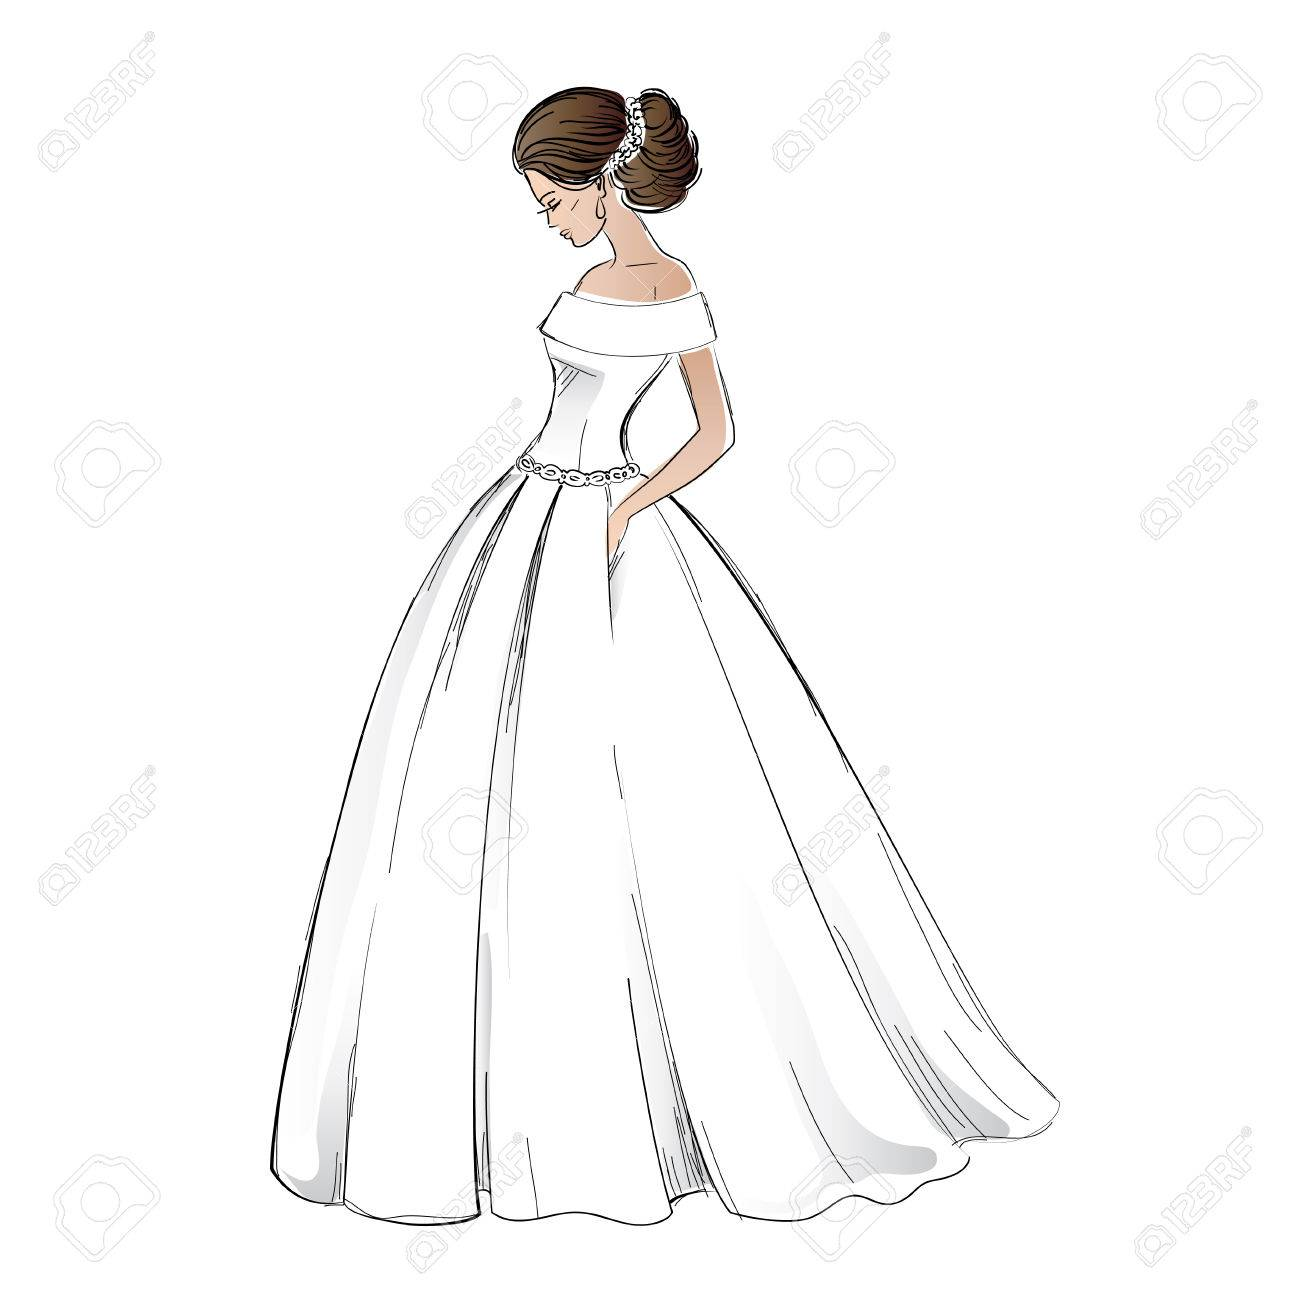 Sketch Of Young Bride Model In Wedding Dress With Pretty Hair ...